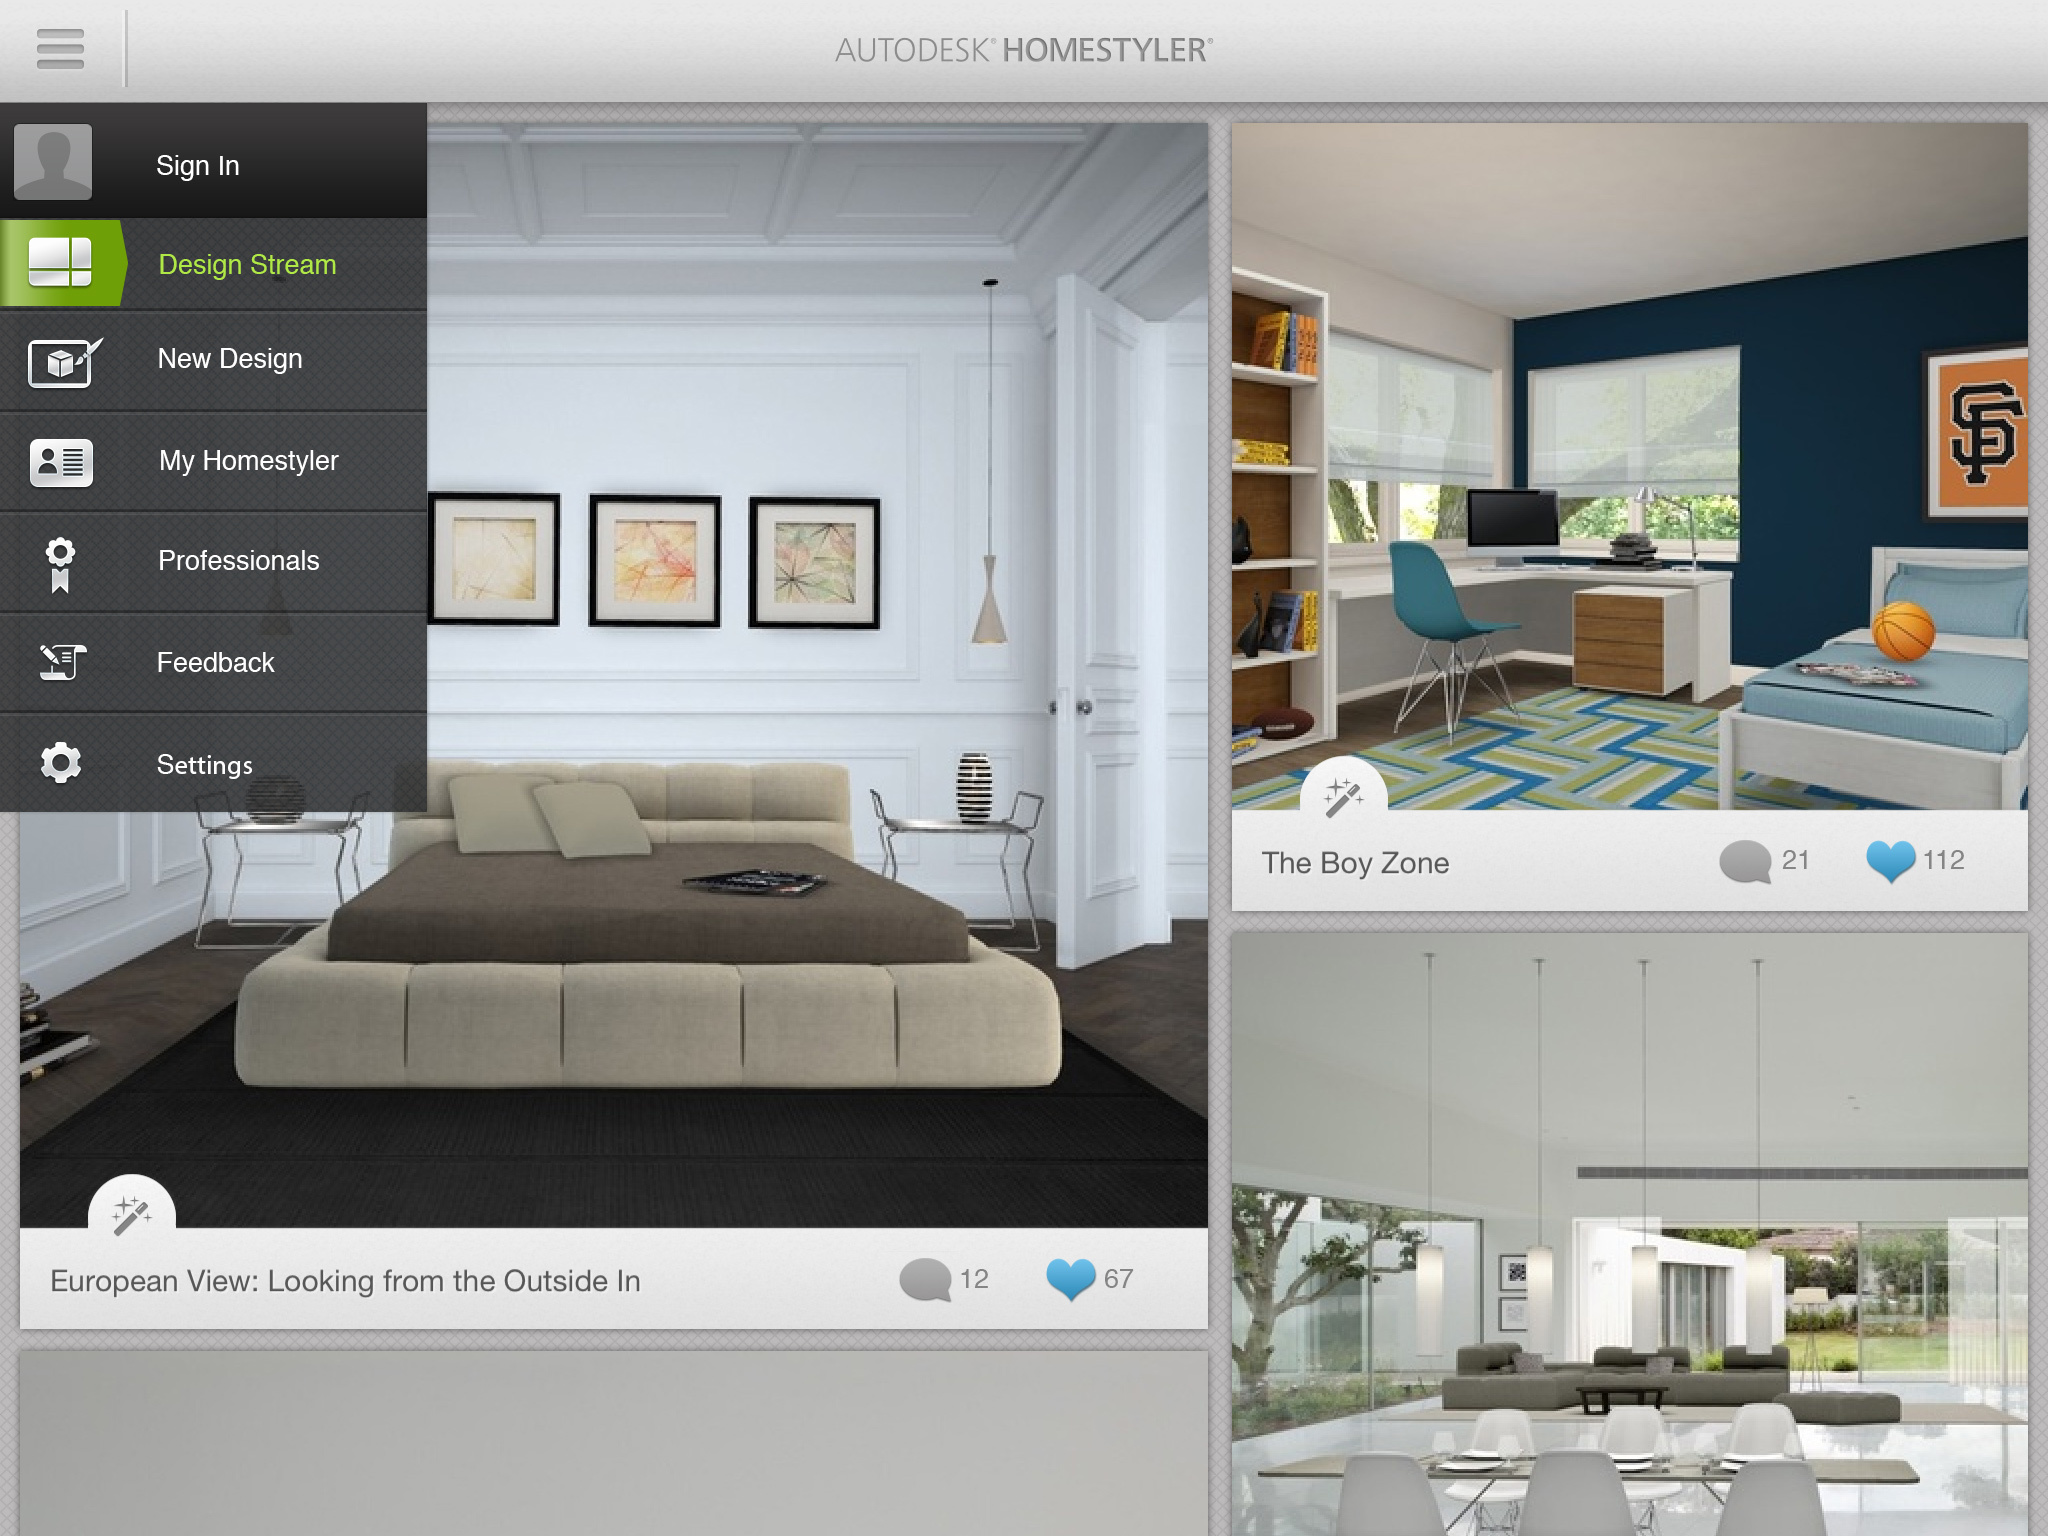 Attirant New Autodesk Homestyler App Transforms Your Living Space Into Design  Playground | Business Wire